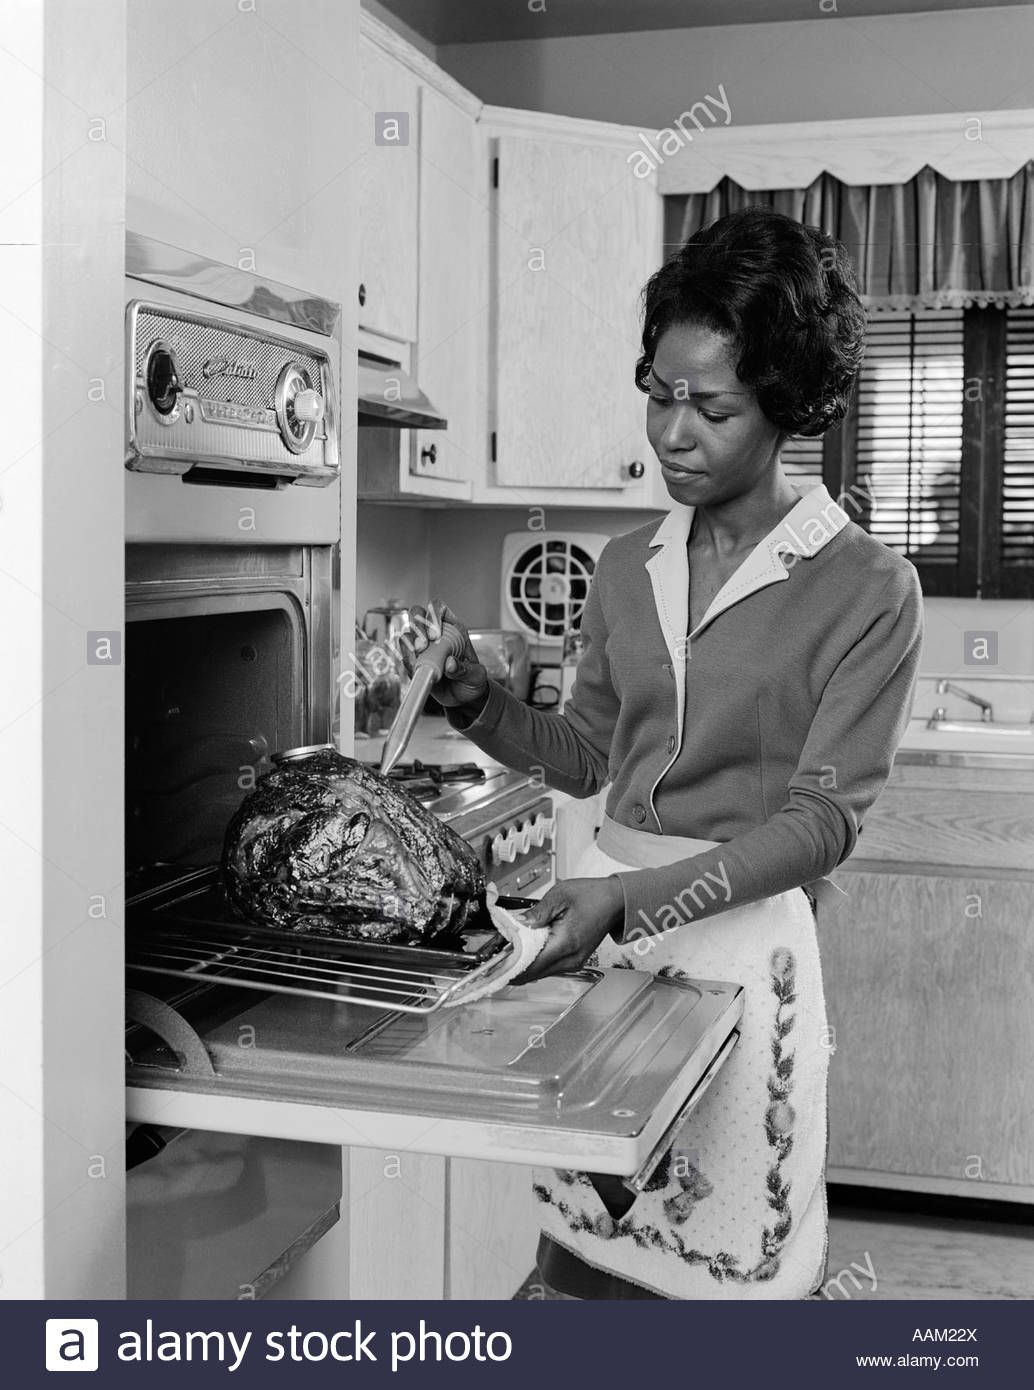 Pin by Anlin Dauber on Rosemary & Time African american